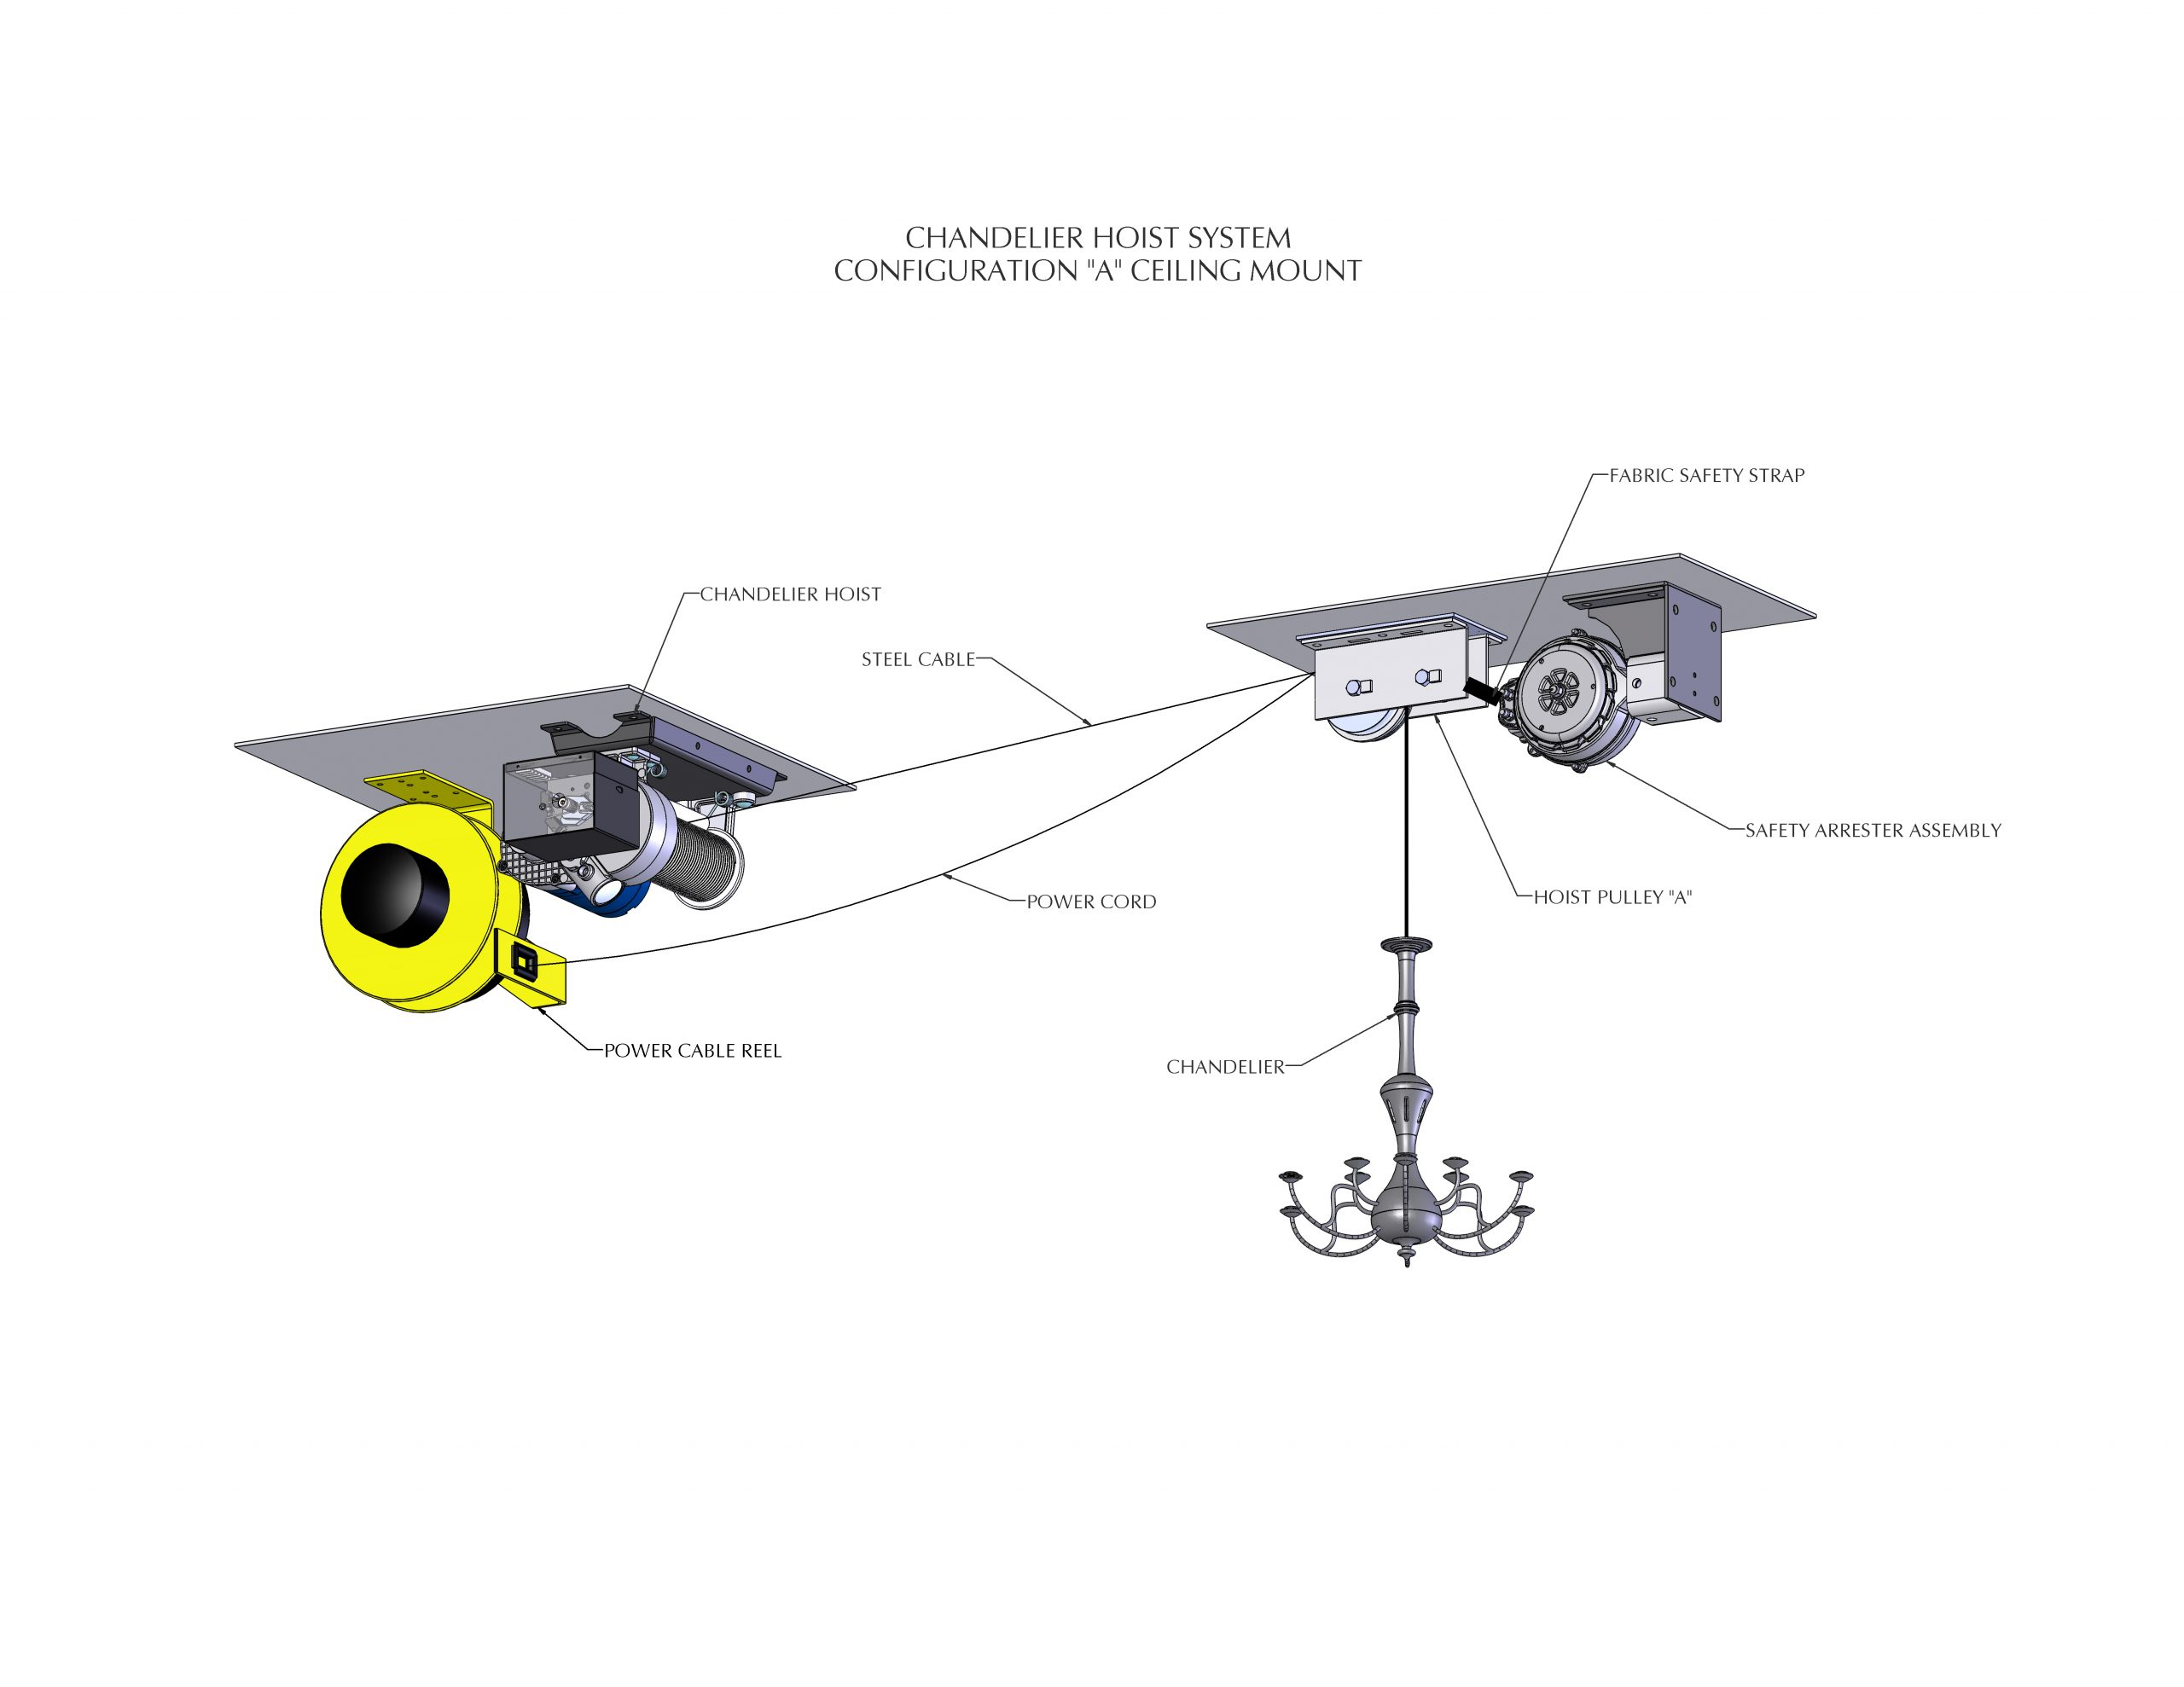 CHANDELIER WINCH CONFIGURATION A